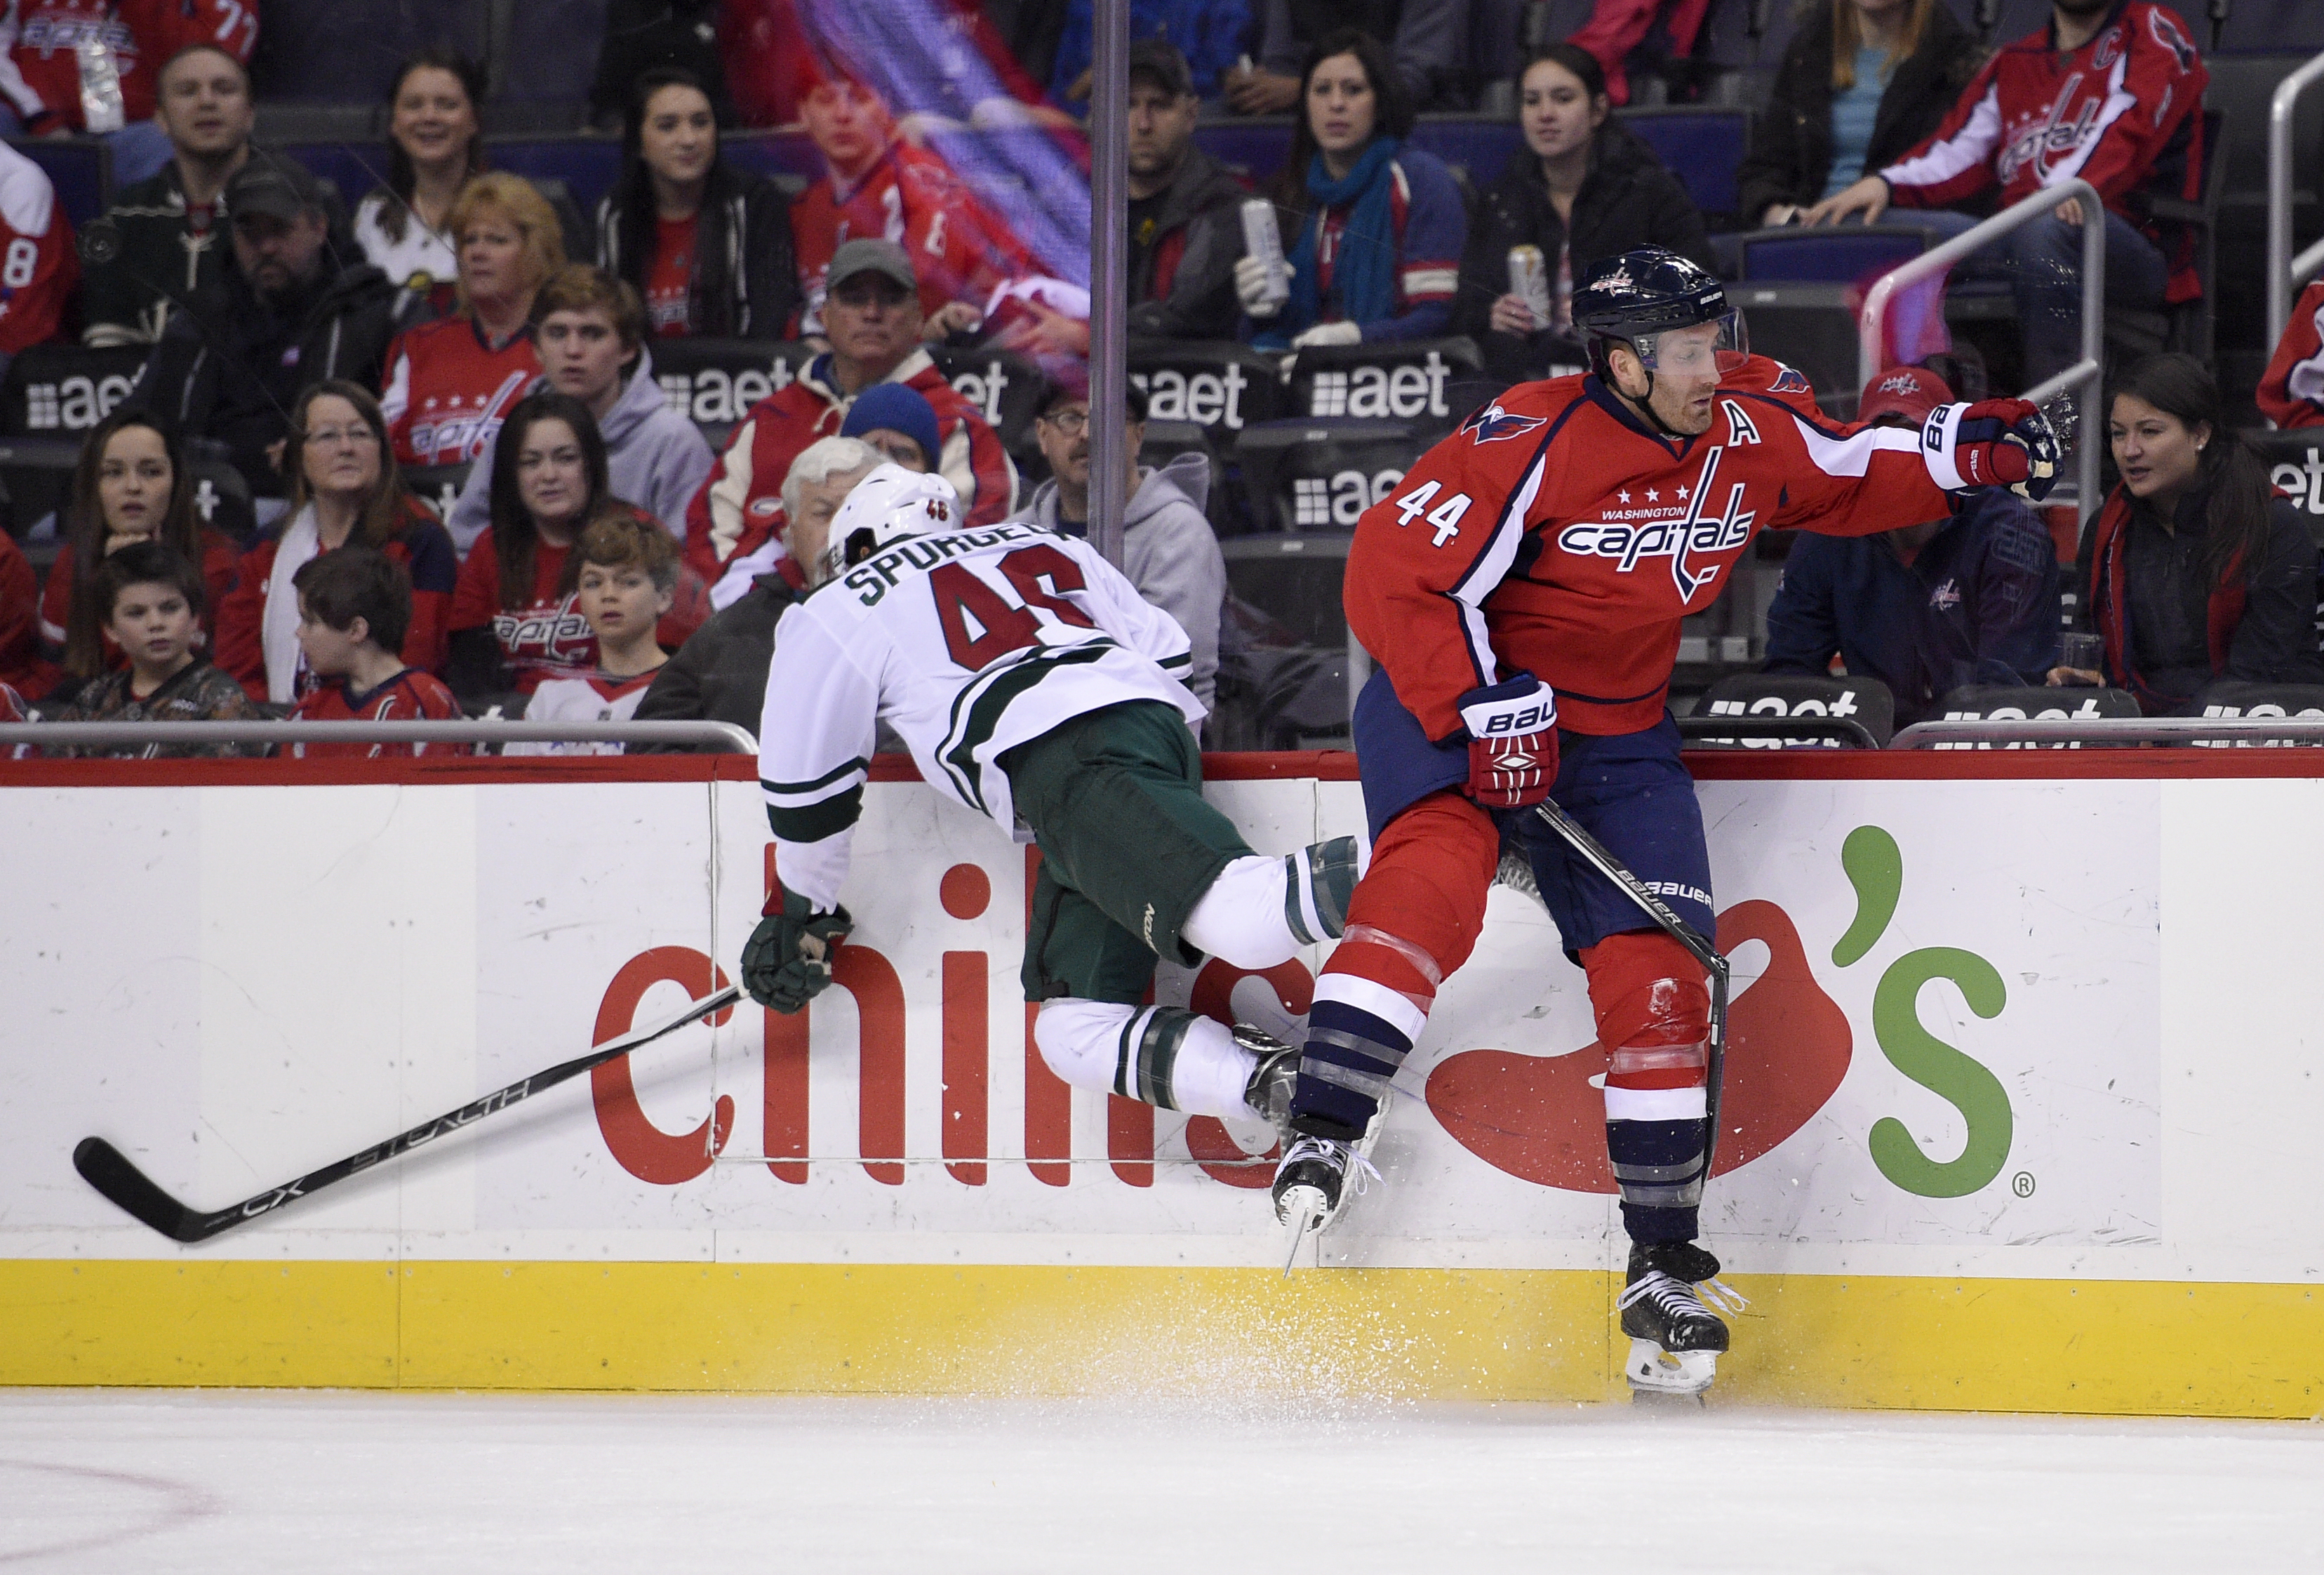 In this photo taken Feb. 26, 2016, Washington Capitals defenseman Brooks Orpik (44) and Minnesota Wild defenseman Jared Spurgeon (46) collide against the boards during the first period of an NHL hockey game in Washington. The Washington Capitals' only maj